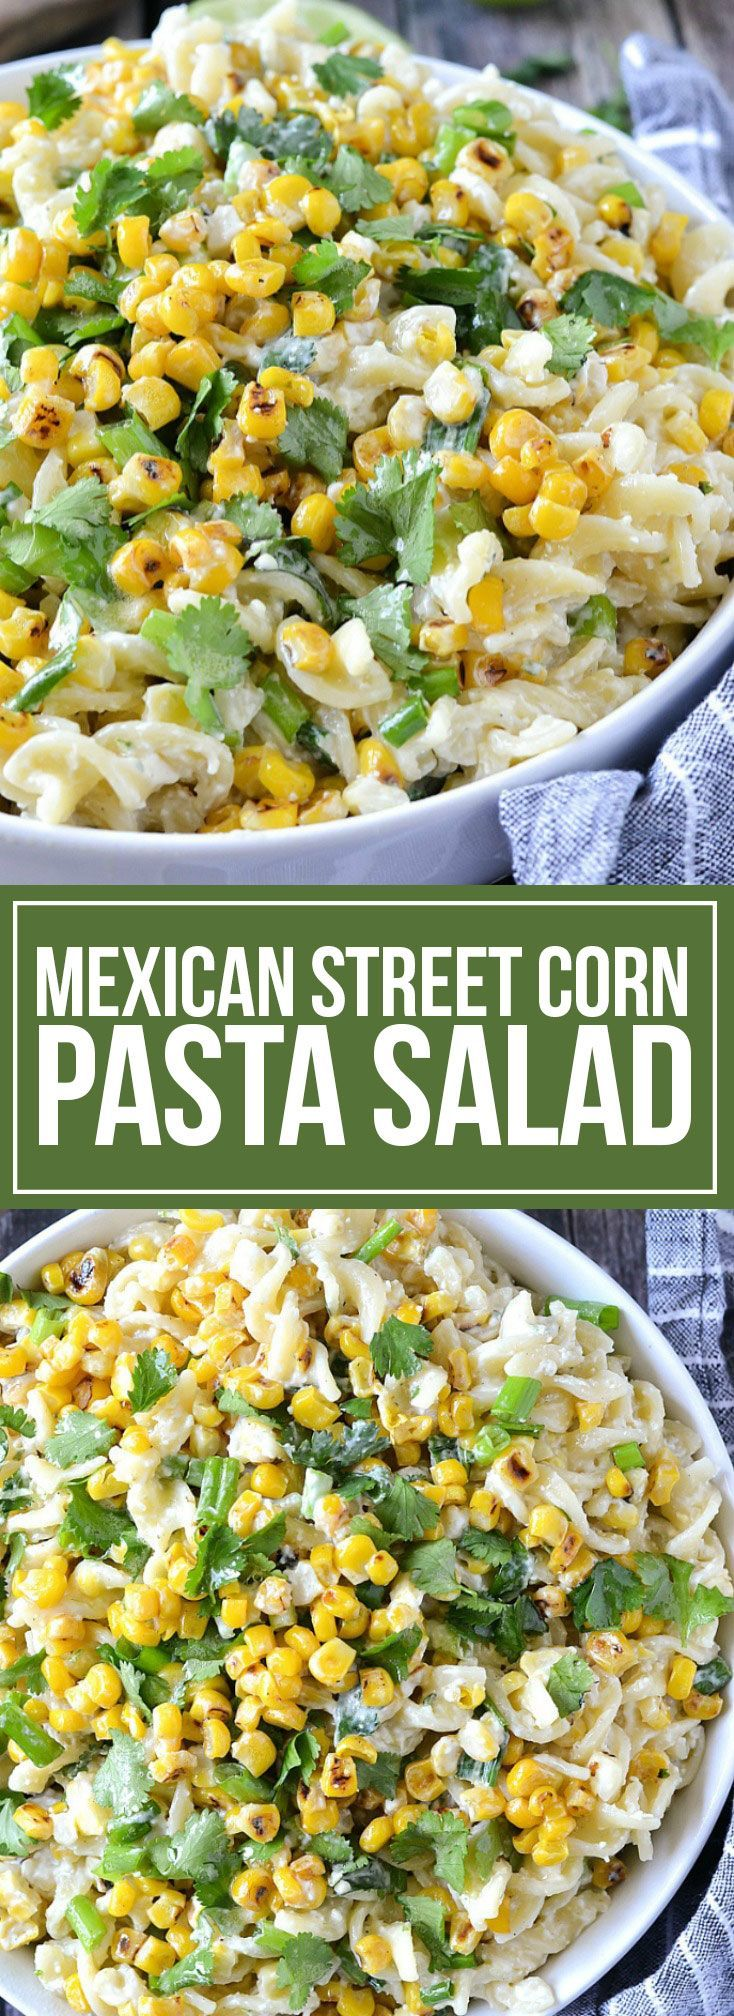 Street Corn Pasta Salad An easy recipe for Mexican Street Corn Pasta Salad loaded with grilled corn and pasta and tossed in an irresistible sauce!An easy recipe for Mexican Street Corn Pasta Salad loaded with grilled corn and pasta and tossed in an irresistible sauce!